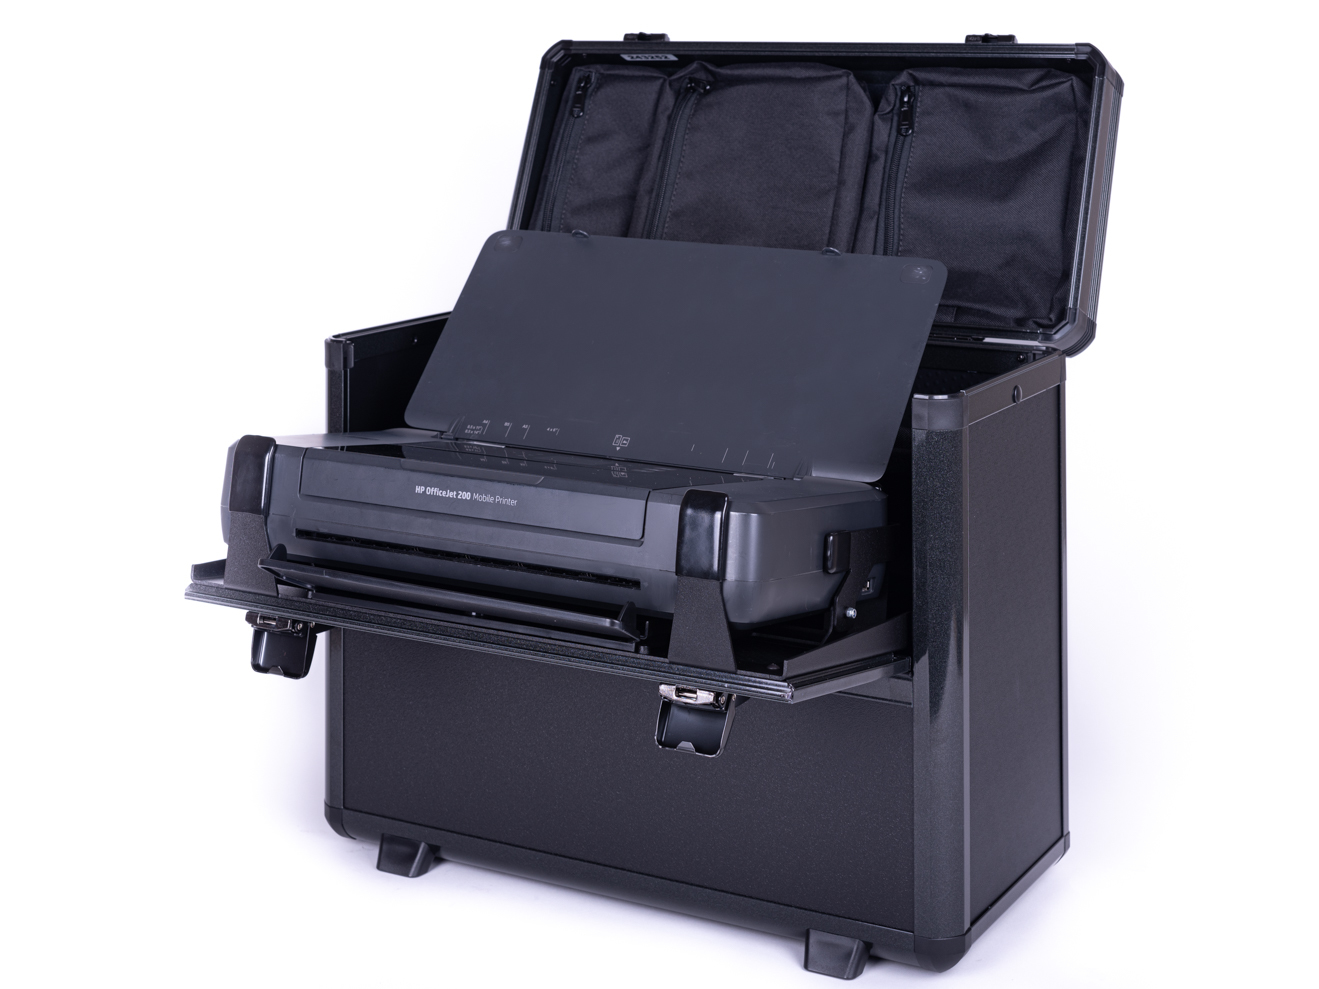 7 0998 Mobile Office HP 200 printer notebookkoffer